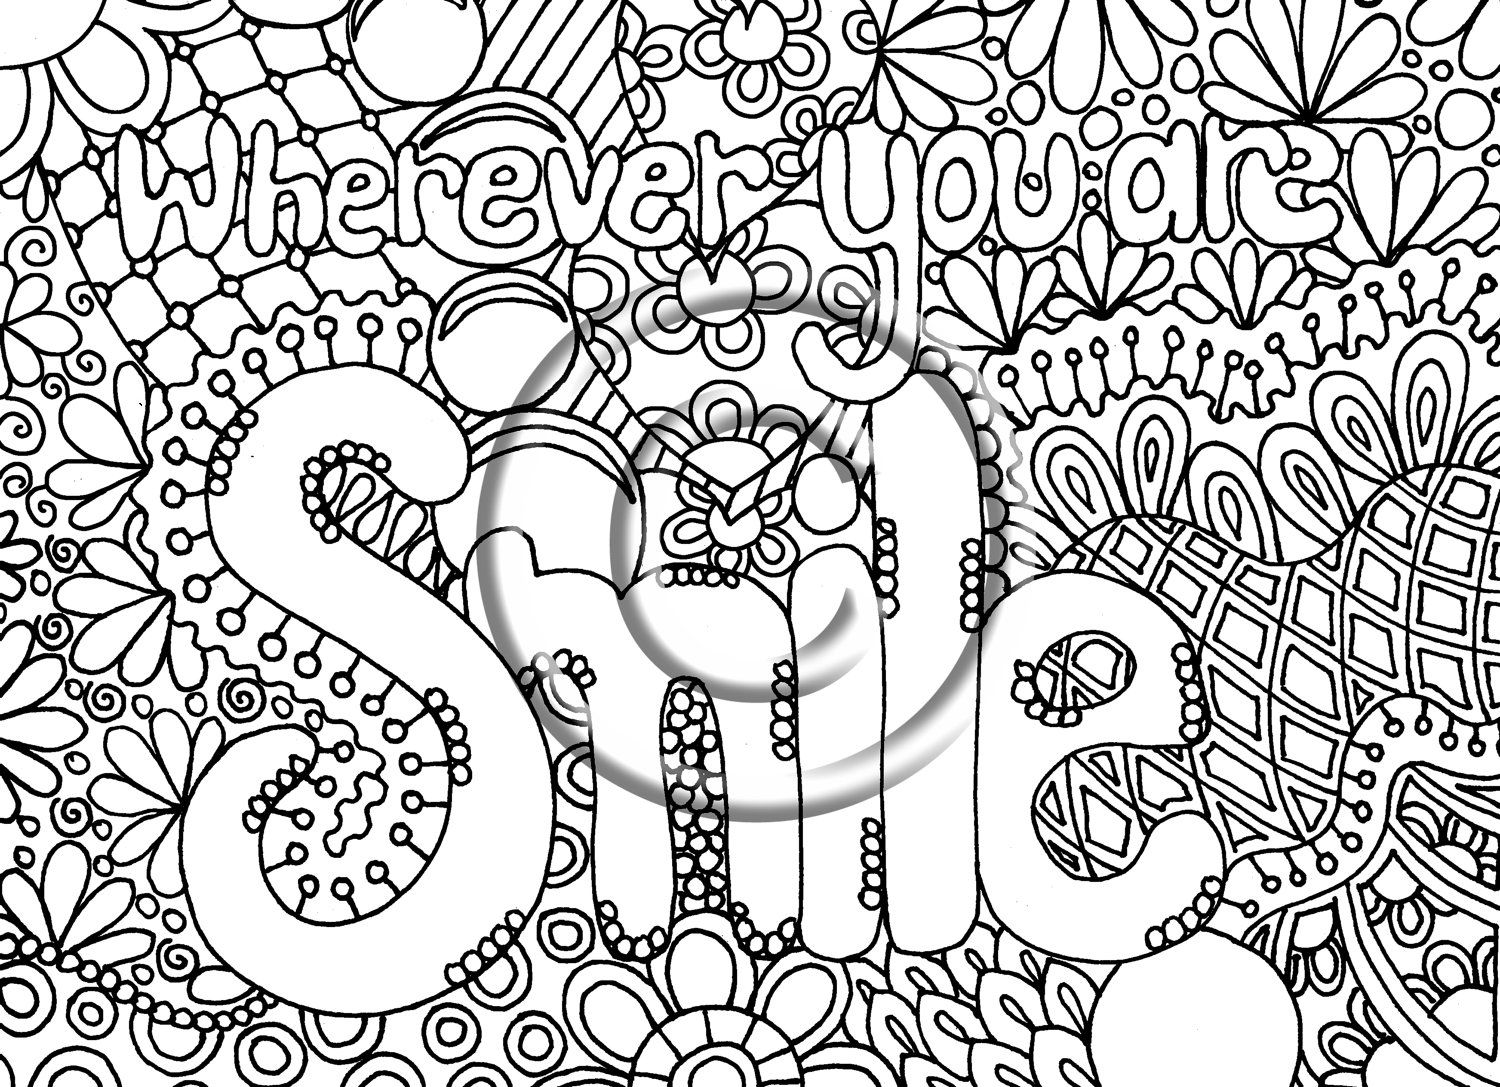 Coloring pages for adults abstract - Abstract Color Pages Printable Mandala Colouring Pages For Adults Free Printable Abstract Coloring Pages For Adults Captivating Printable Abstract Coloring